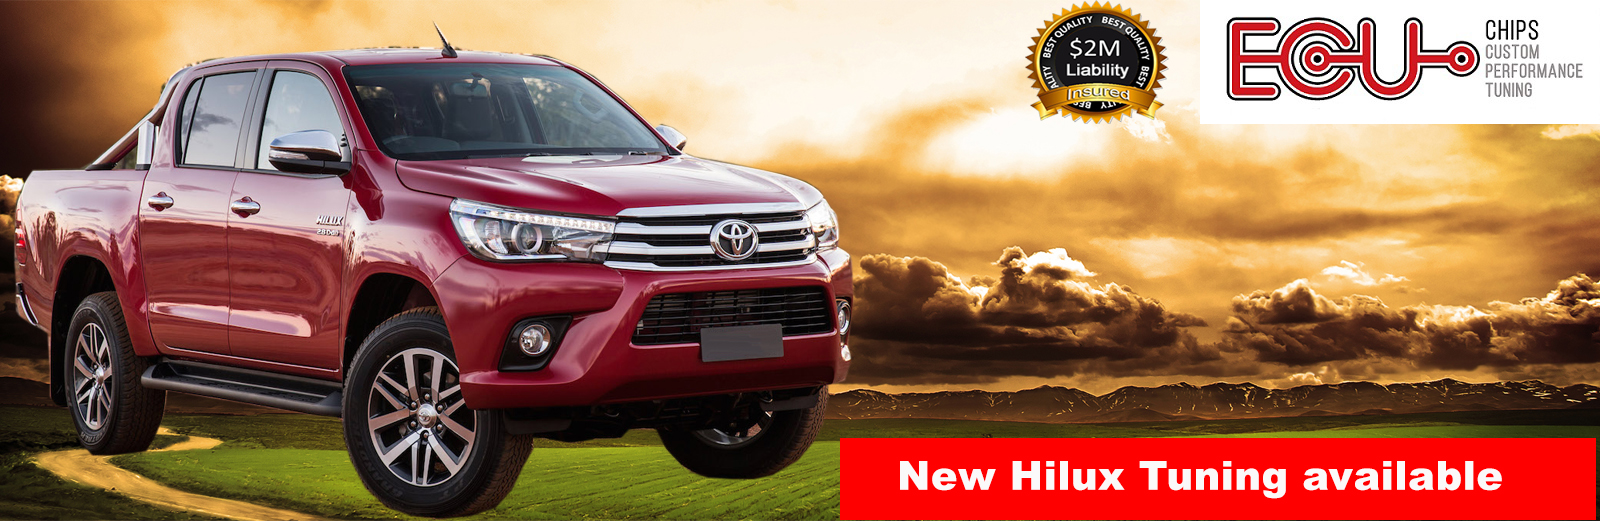 Hilux-2016-new